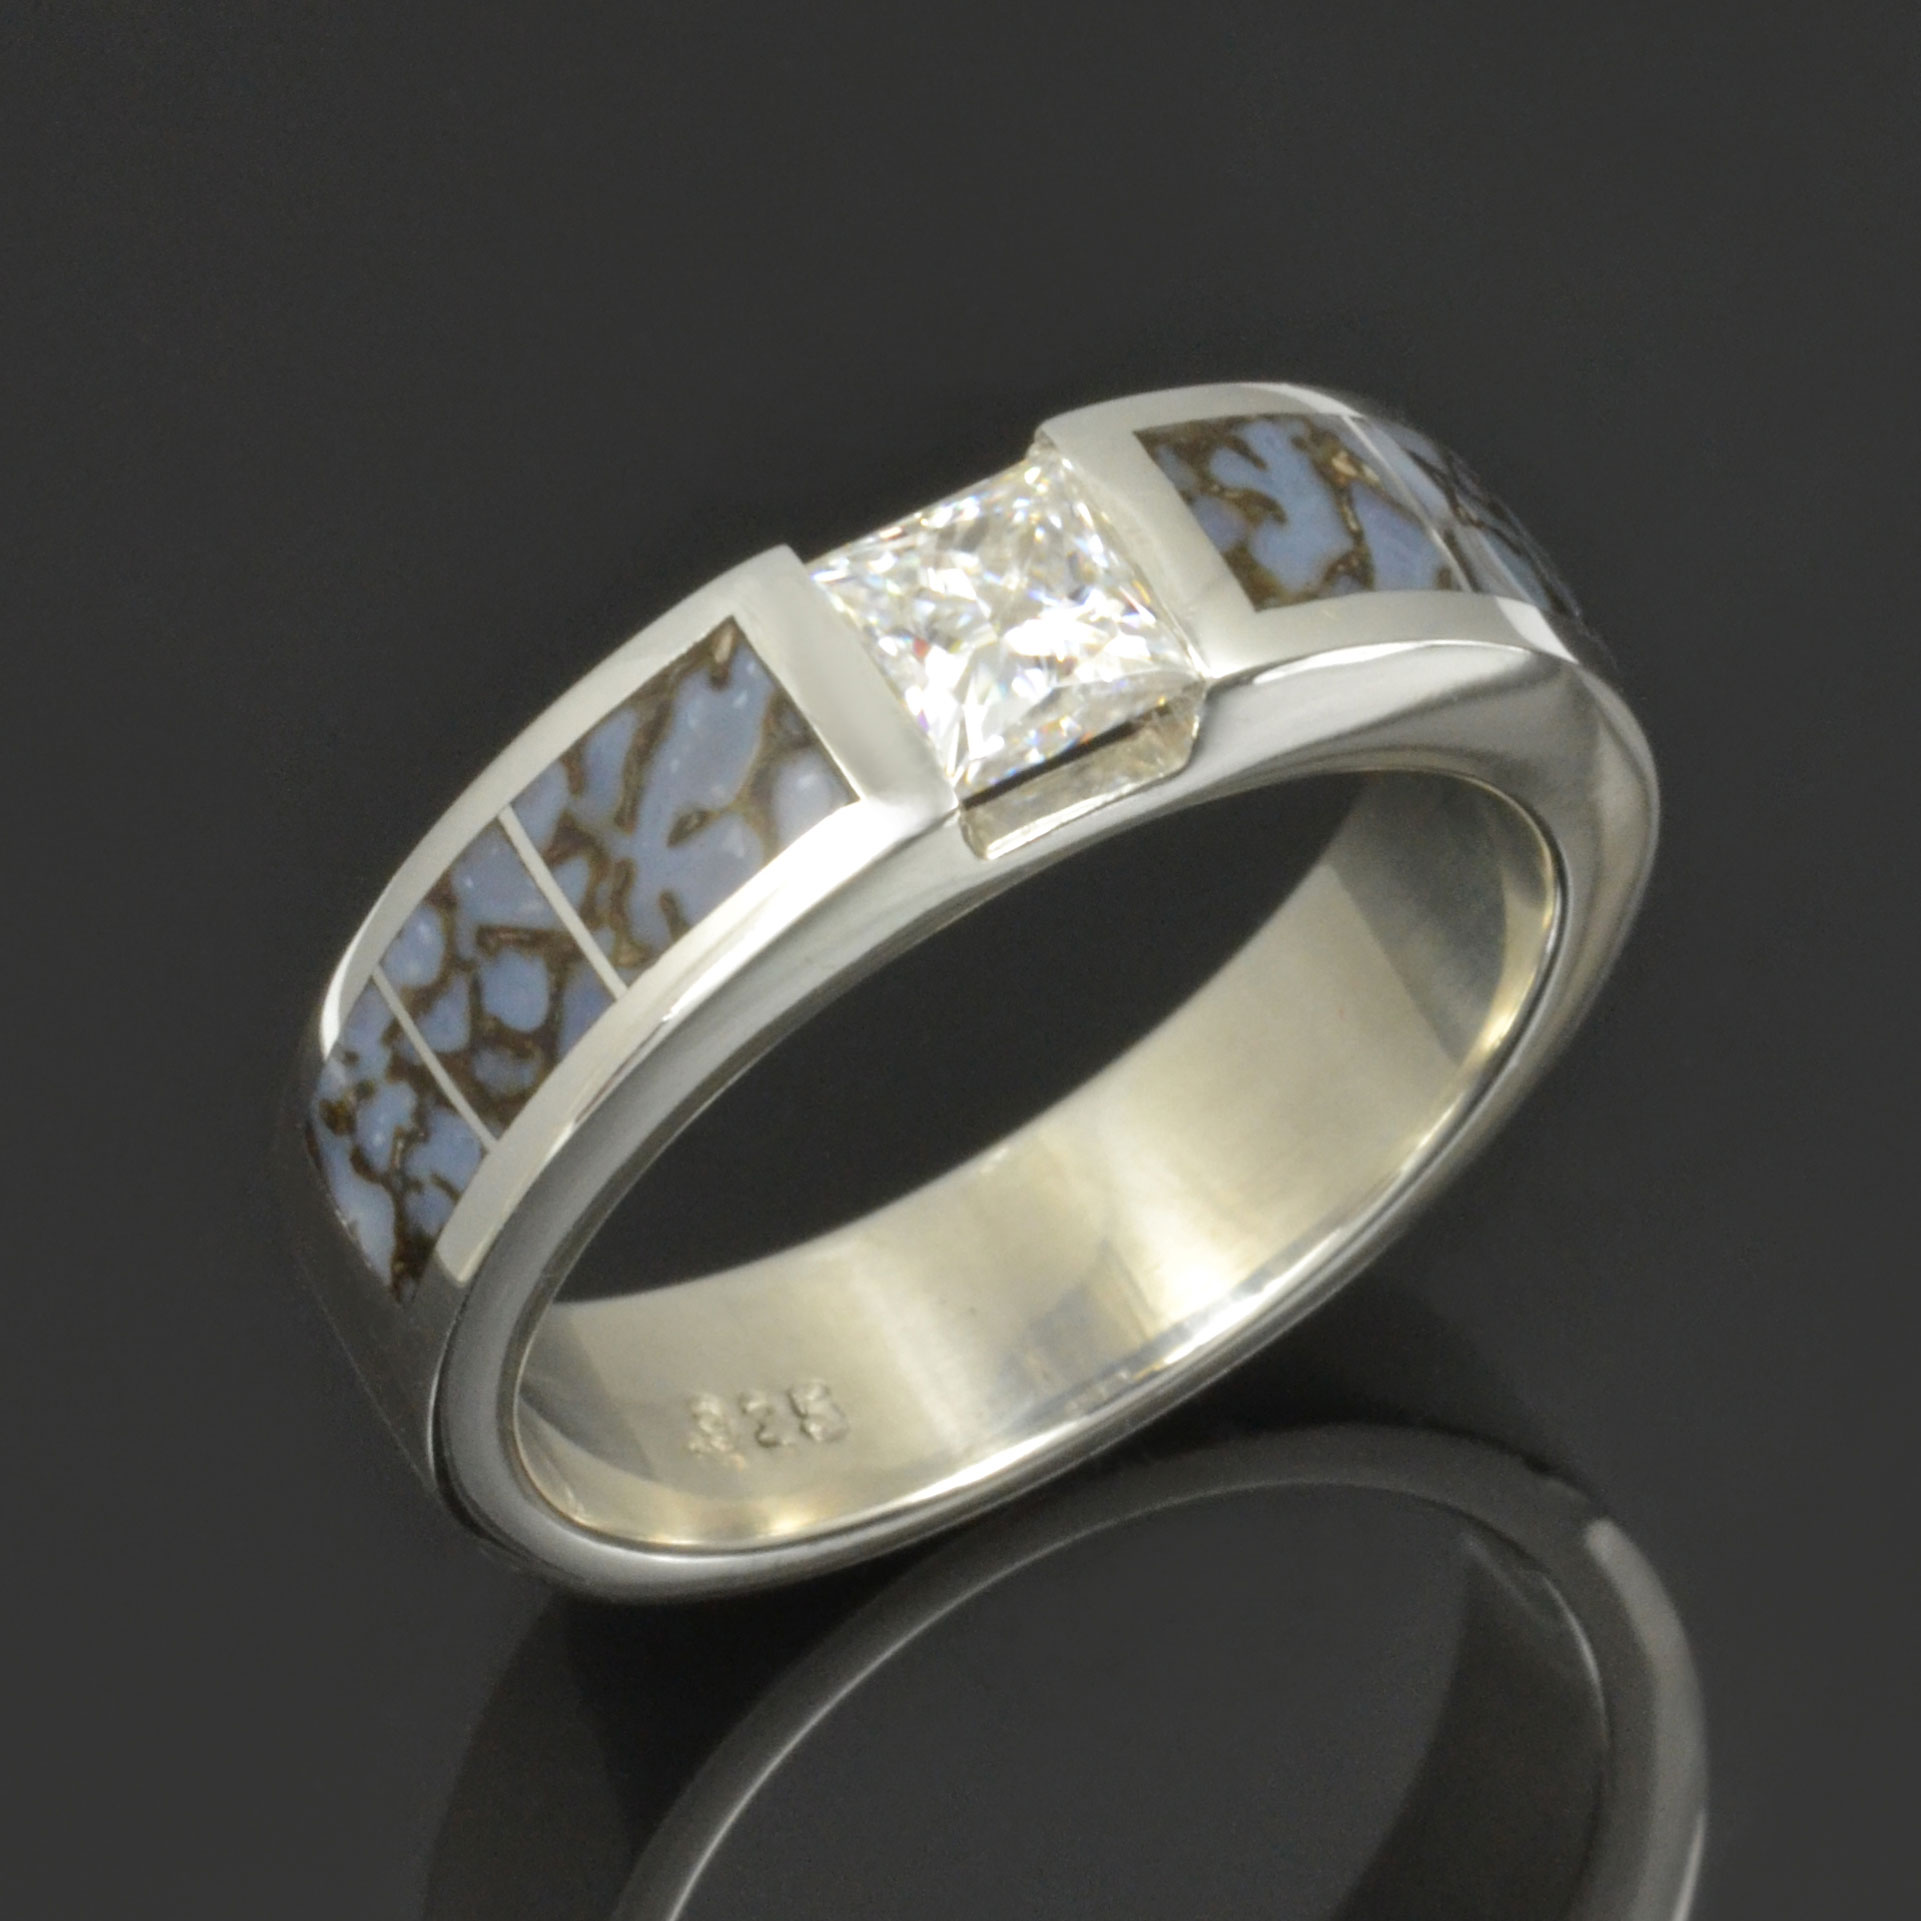 Blue dinosaur bone ring with moissanite set in sterling silver